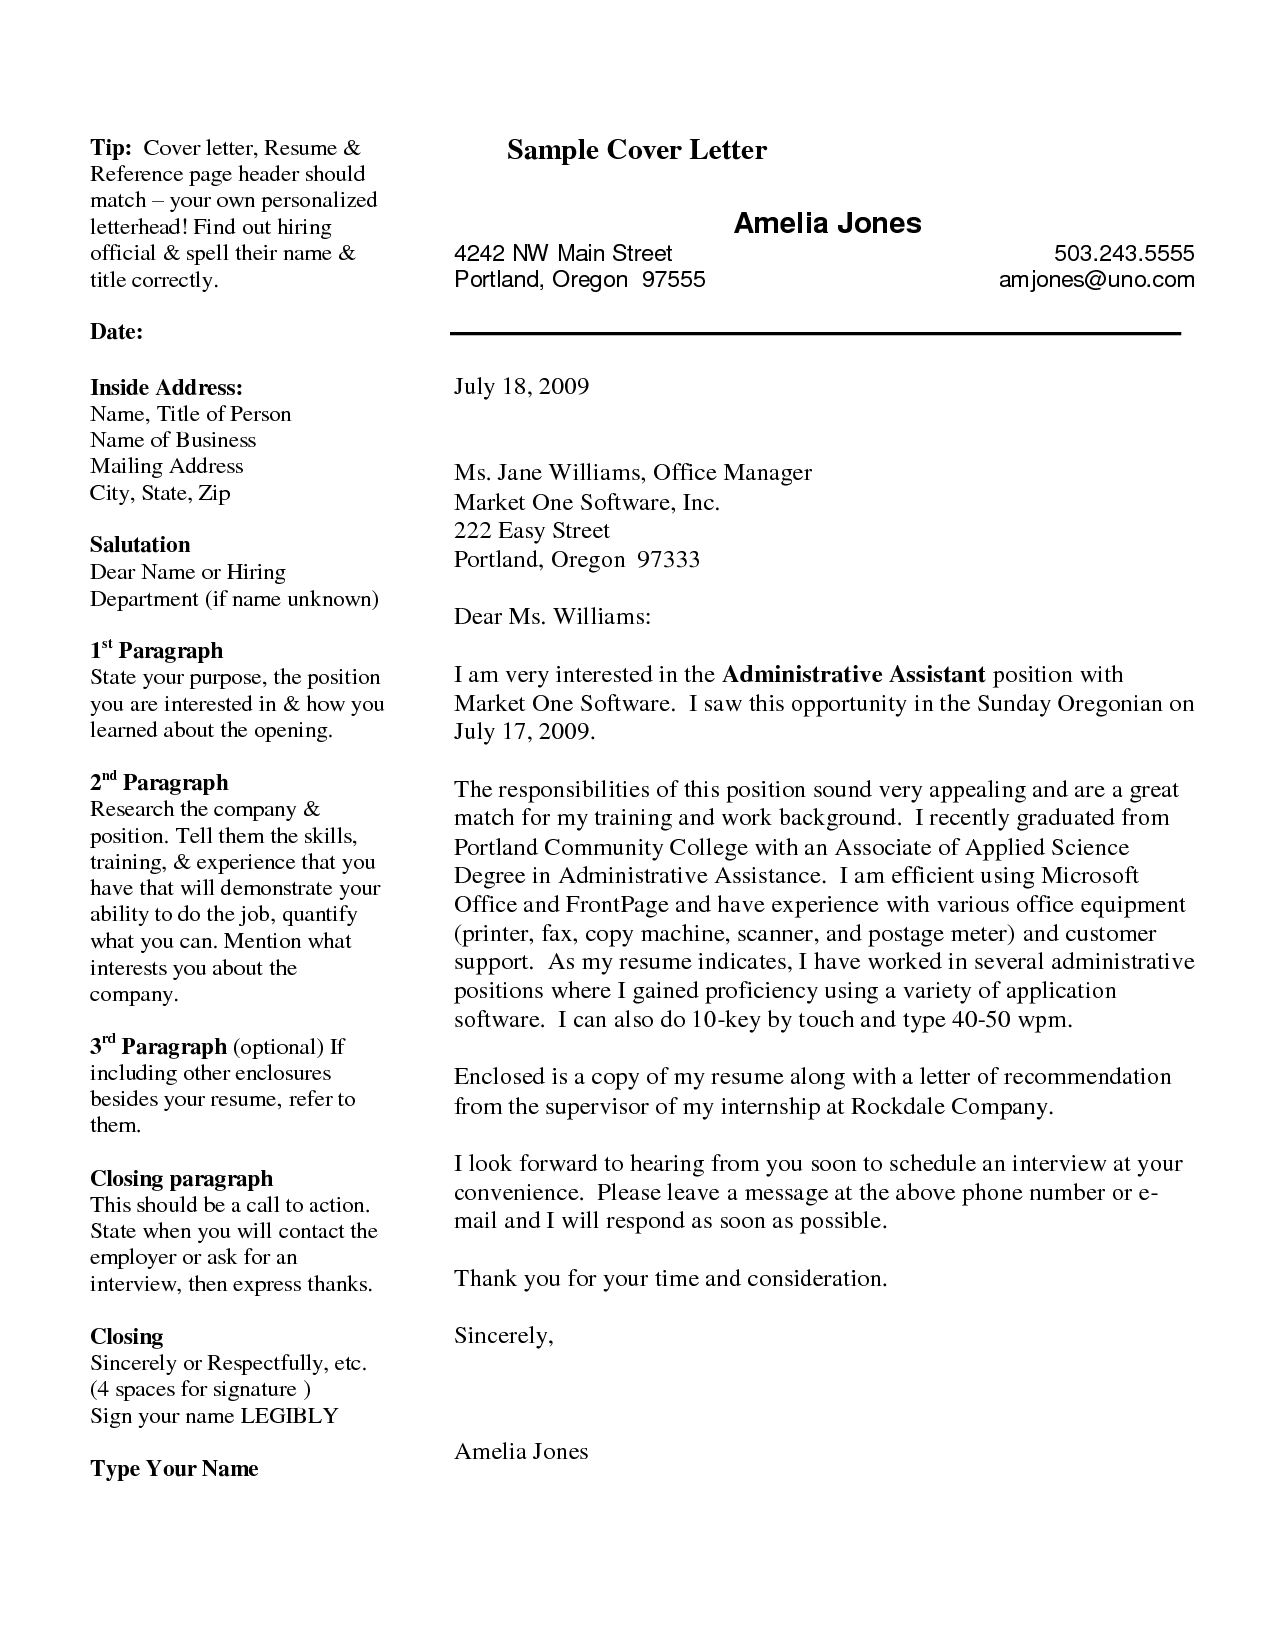 Professional Resume Cover Letter SamplesProfessional Resume Cover Letter  Samples Professional Resume Cover Letter Samples,how  Writing Resumes And Cover Letters